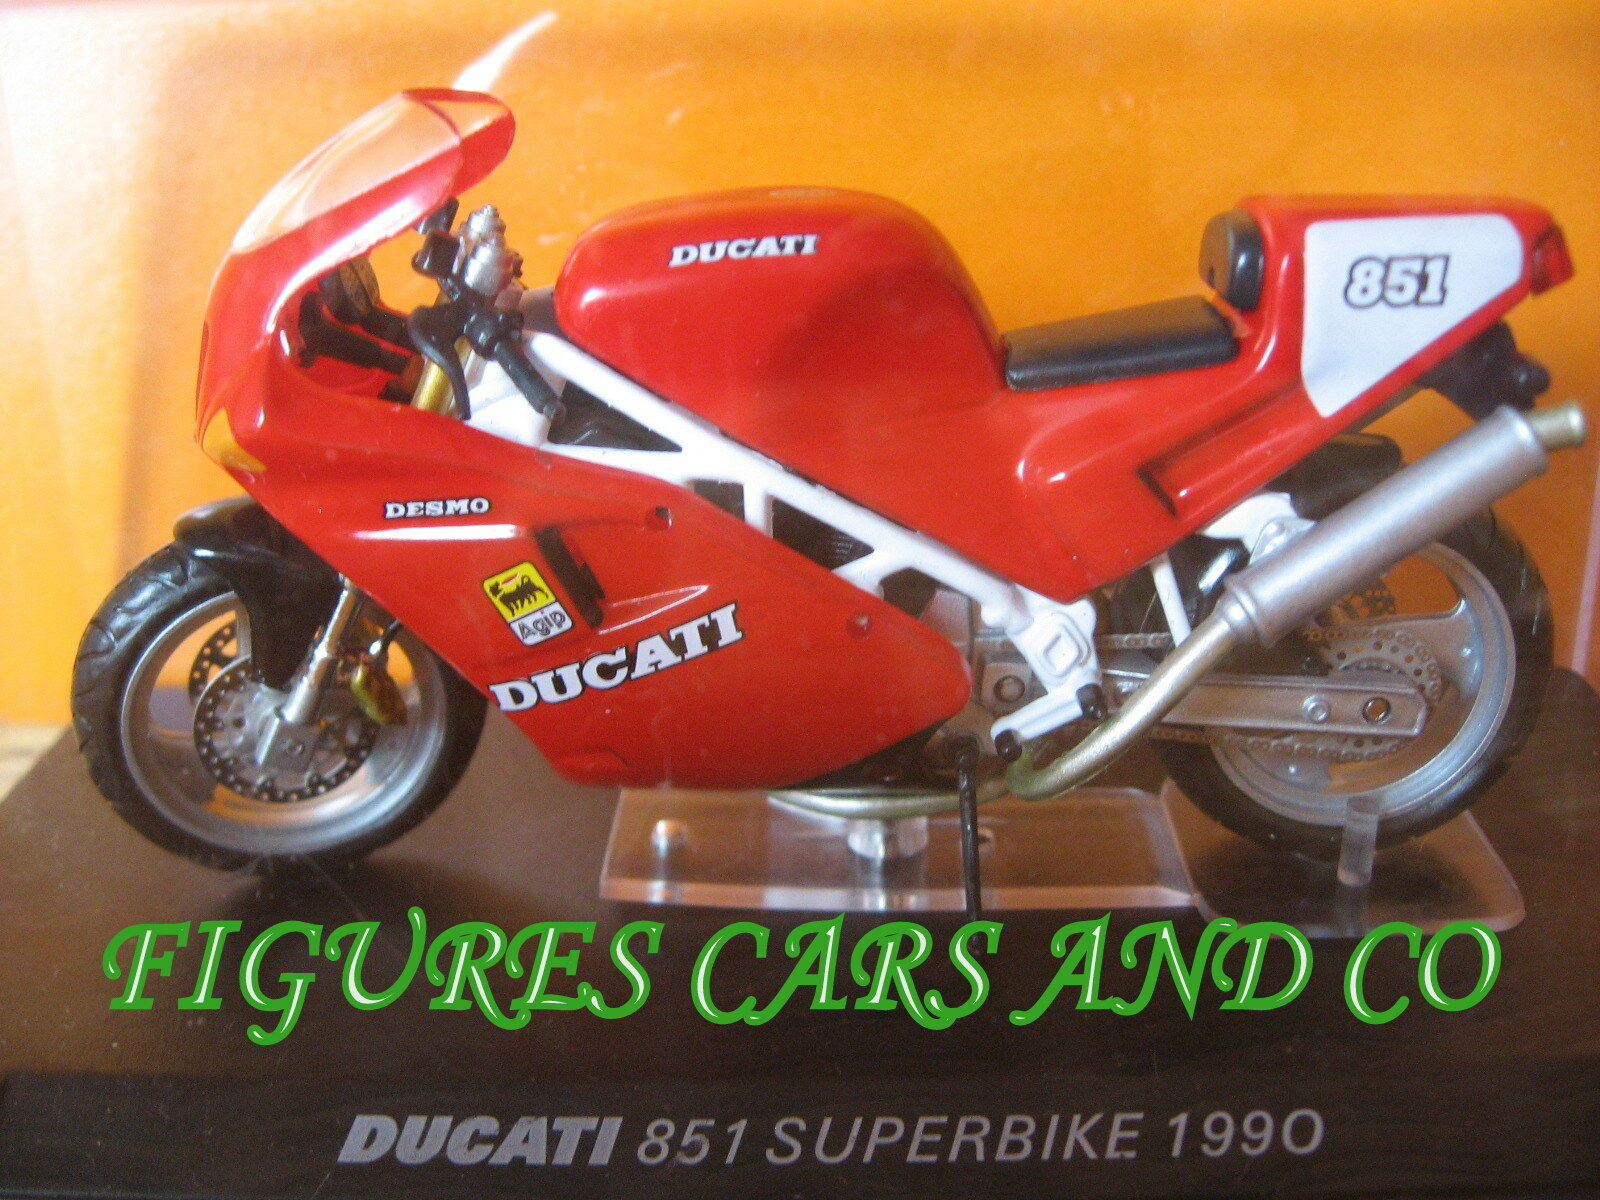 MOTO 1 24 COLLECTION DUCATI 851 SUPERBIKE 1990 MOTORCYCLE